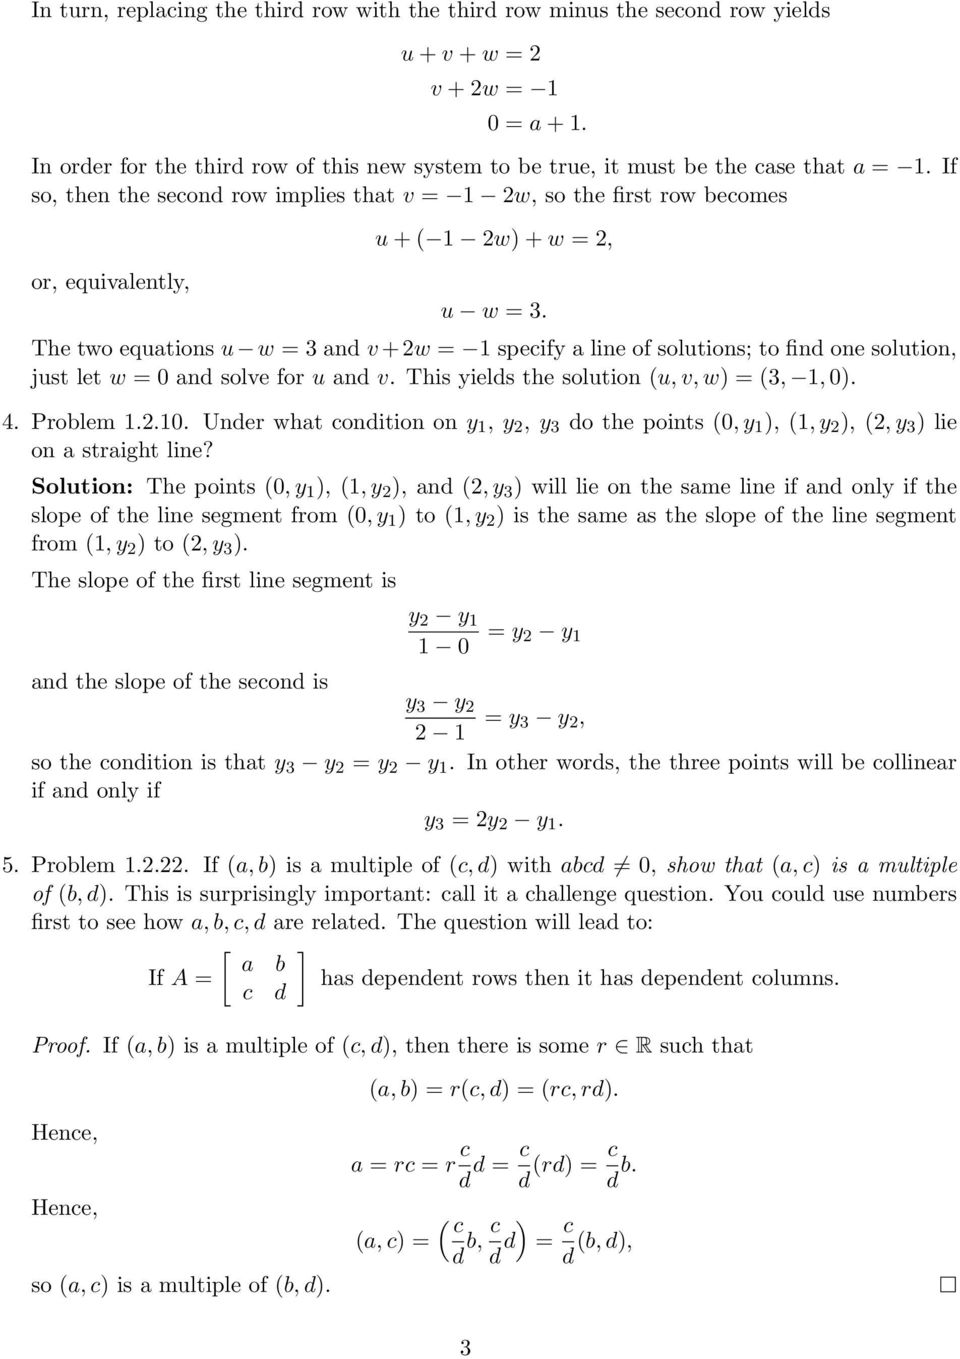 The two equations u w = 3 and v + 2w = specify a line of solutions; to find one solution, just let w = 0